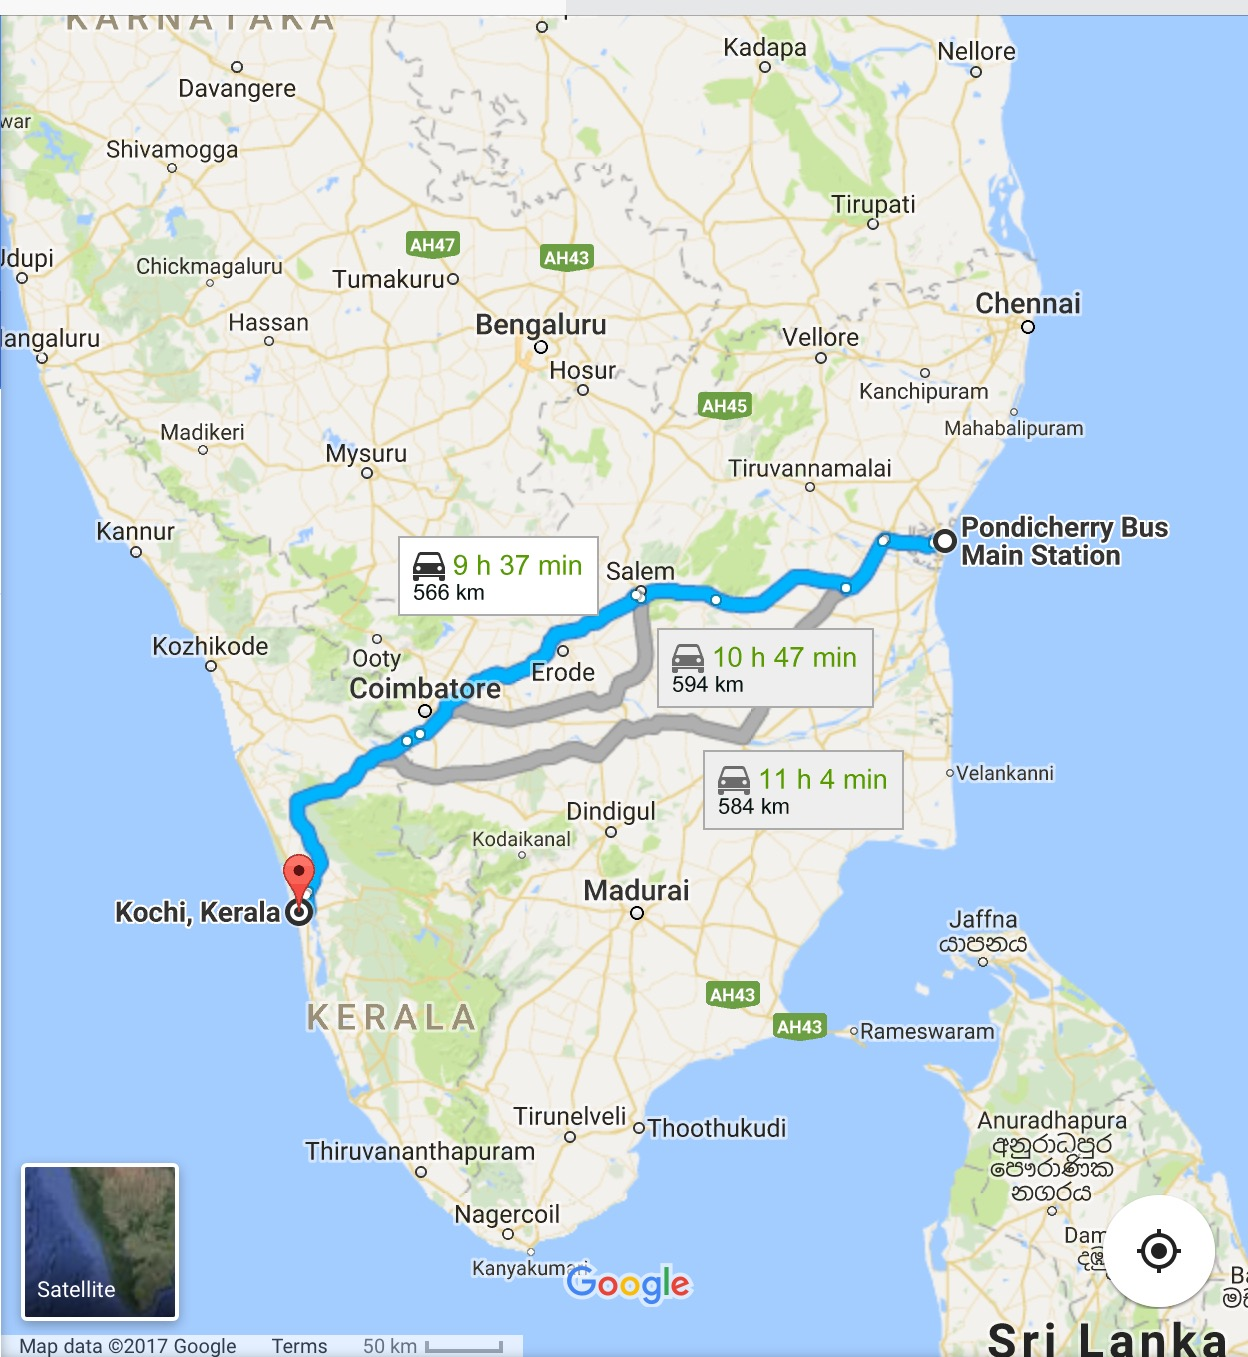 Here is where we travelled by bus. It's a long way!